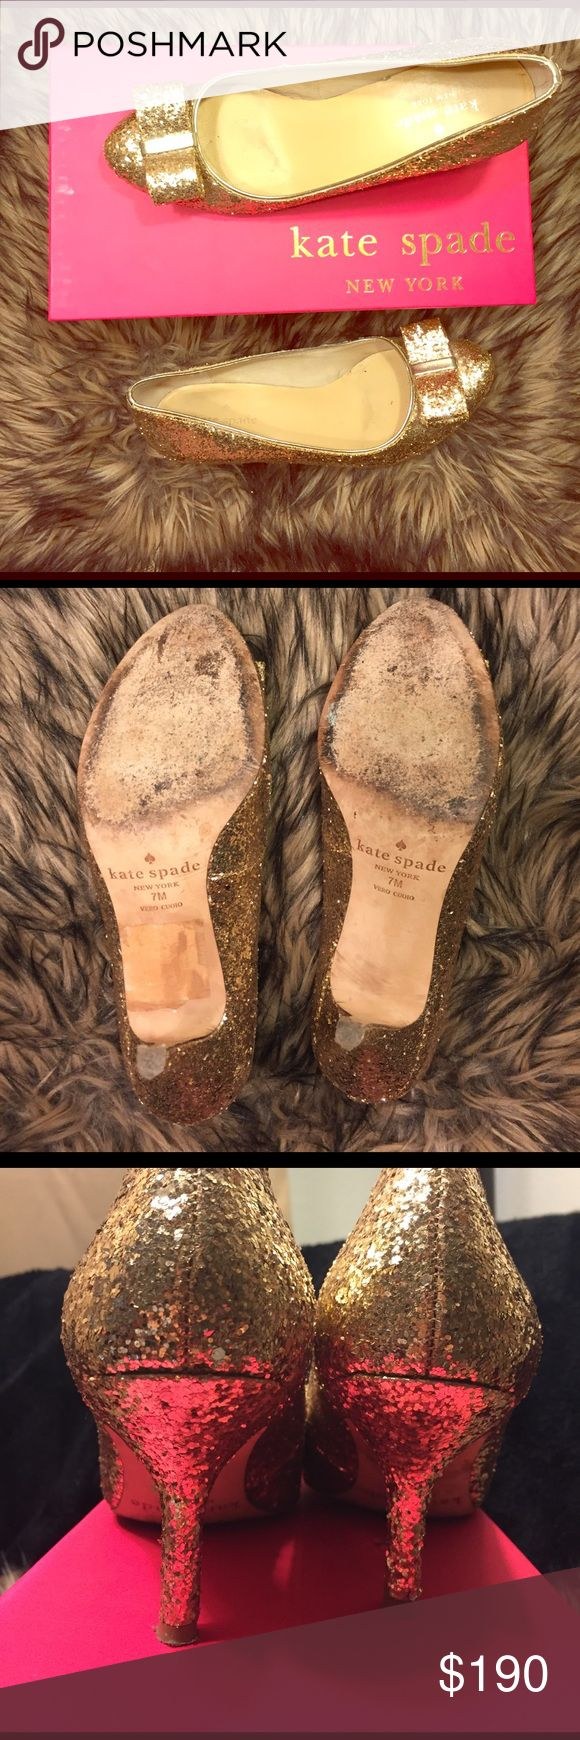 MOVING SALEkate spade Heels Wonderful for special occasions! For the gal who loves some extra glam! Worn a couple of times however that only reflects on the soles of the shoe. Glitter is all still in tact. Bow on the front toe side. Size 7. Small heel about 3 inches. With box kate spade Shoes Heels